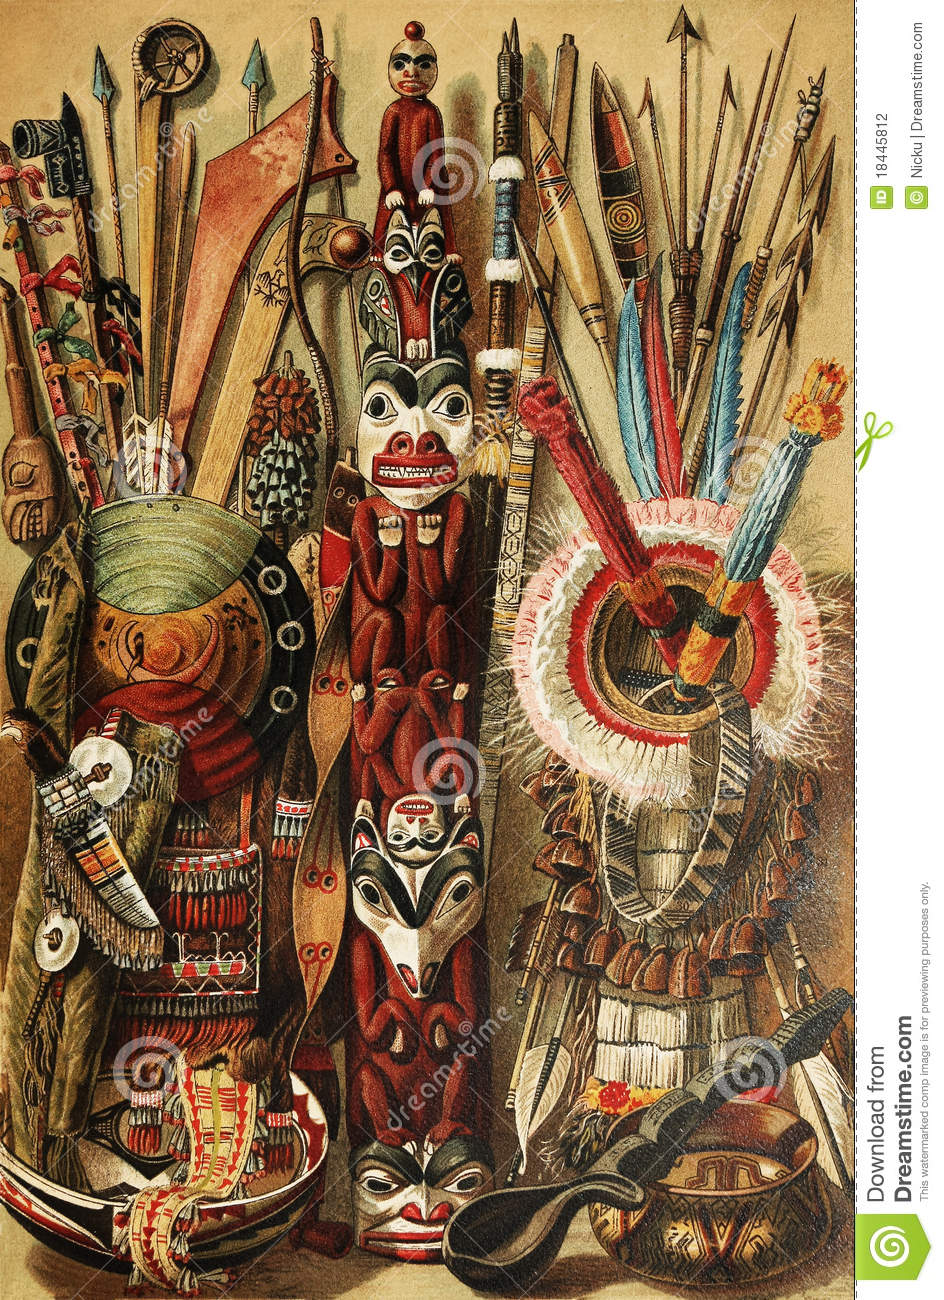 North American Indian culture tools. The drawing is over 100 years old